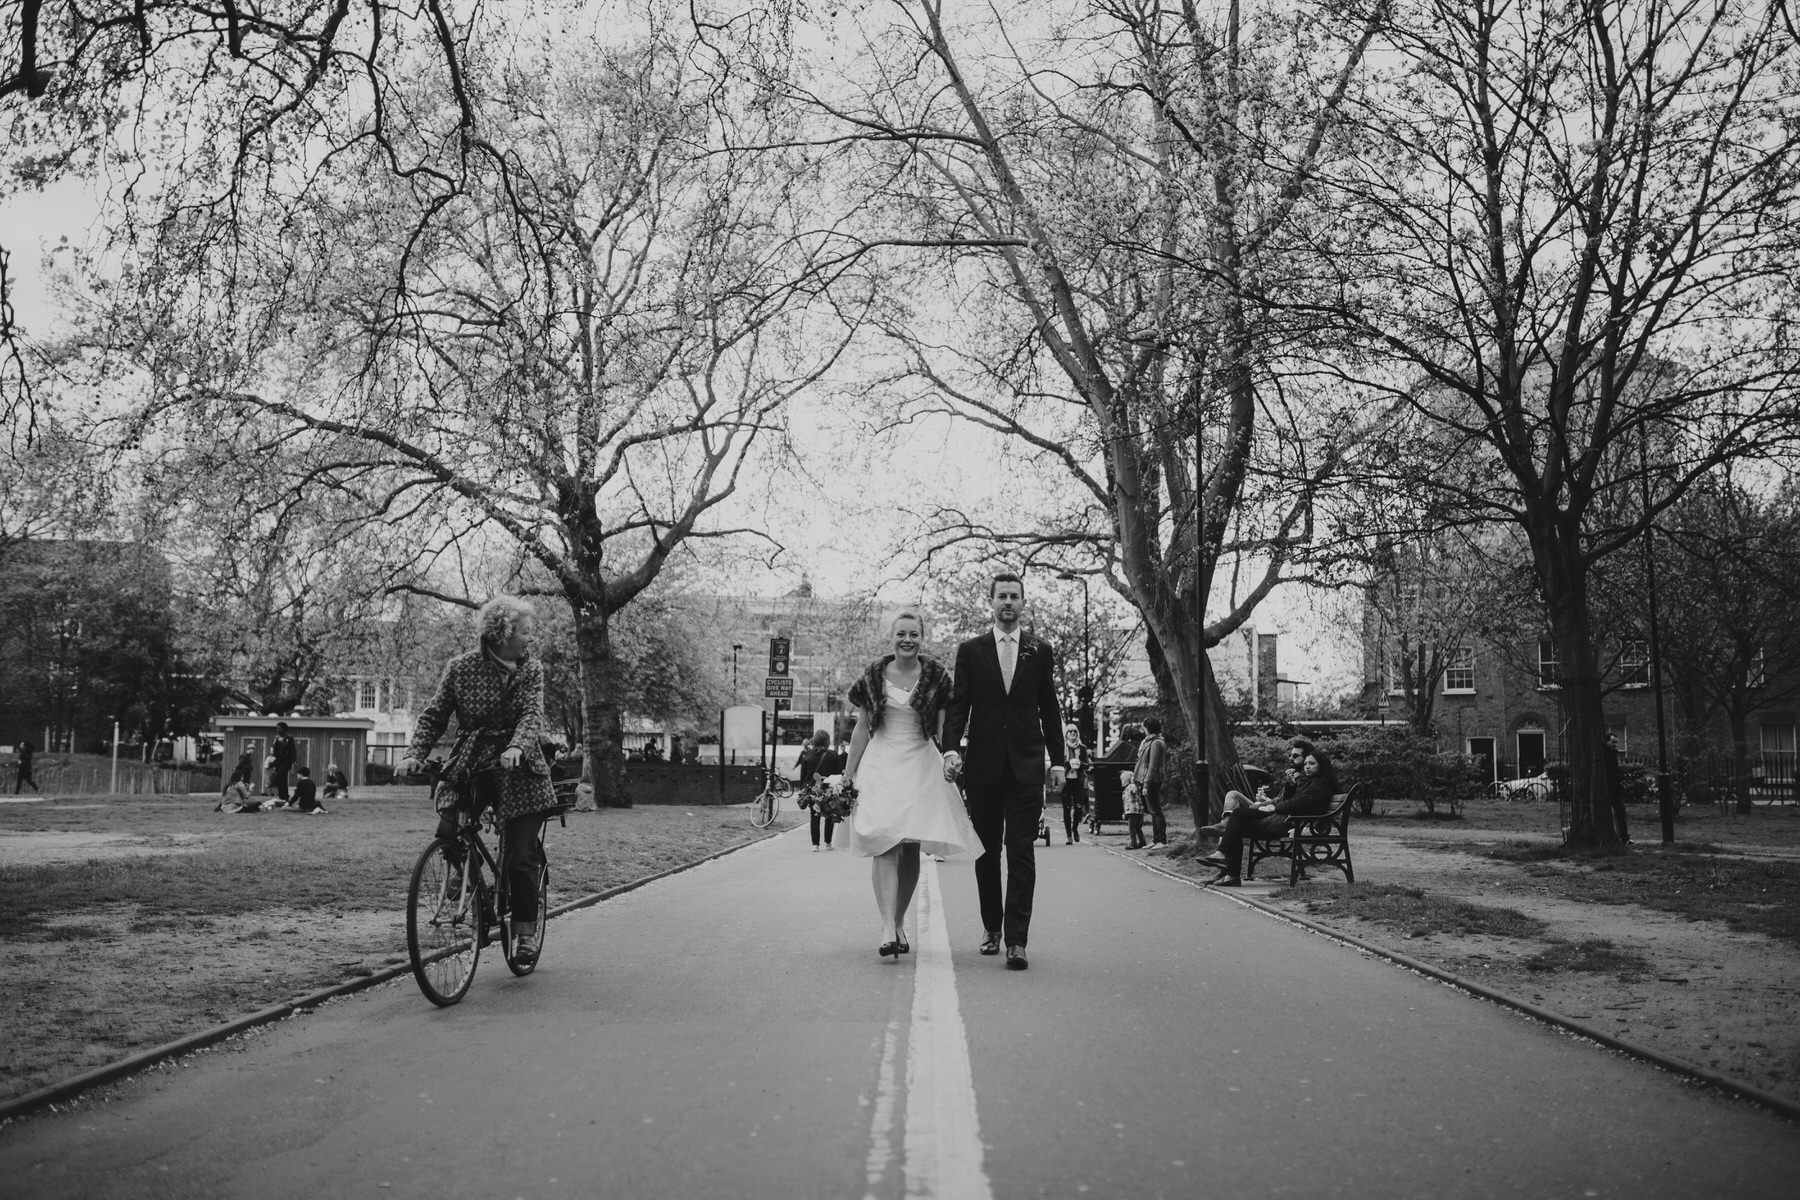 MS-Londesborough-Pub-wedding-Hackney-alternative-photographer-39-quirky-couple-portraits-London-Fields-park-reportage.jpg